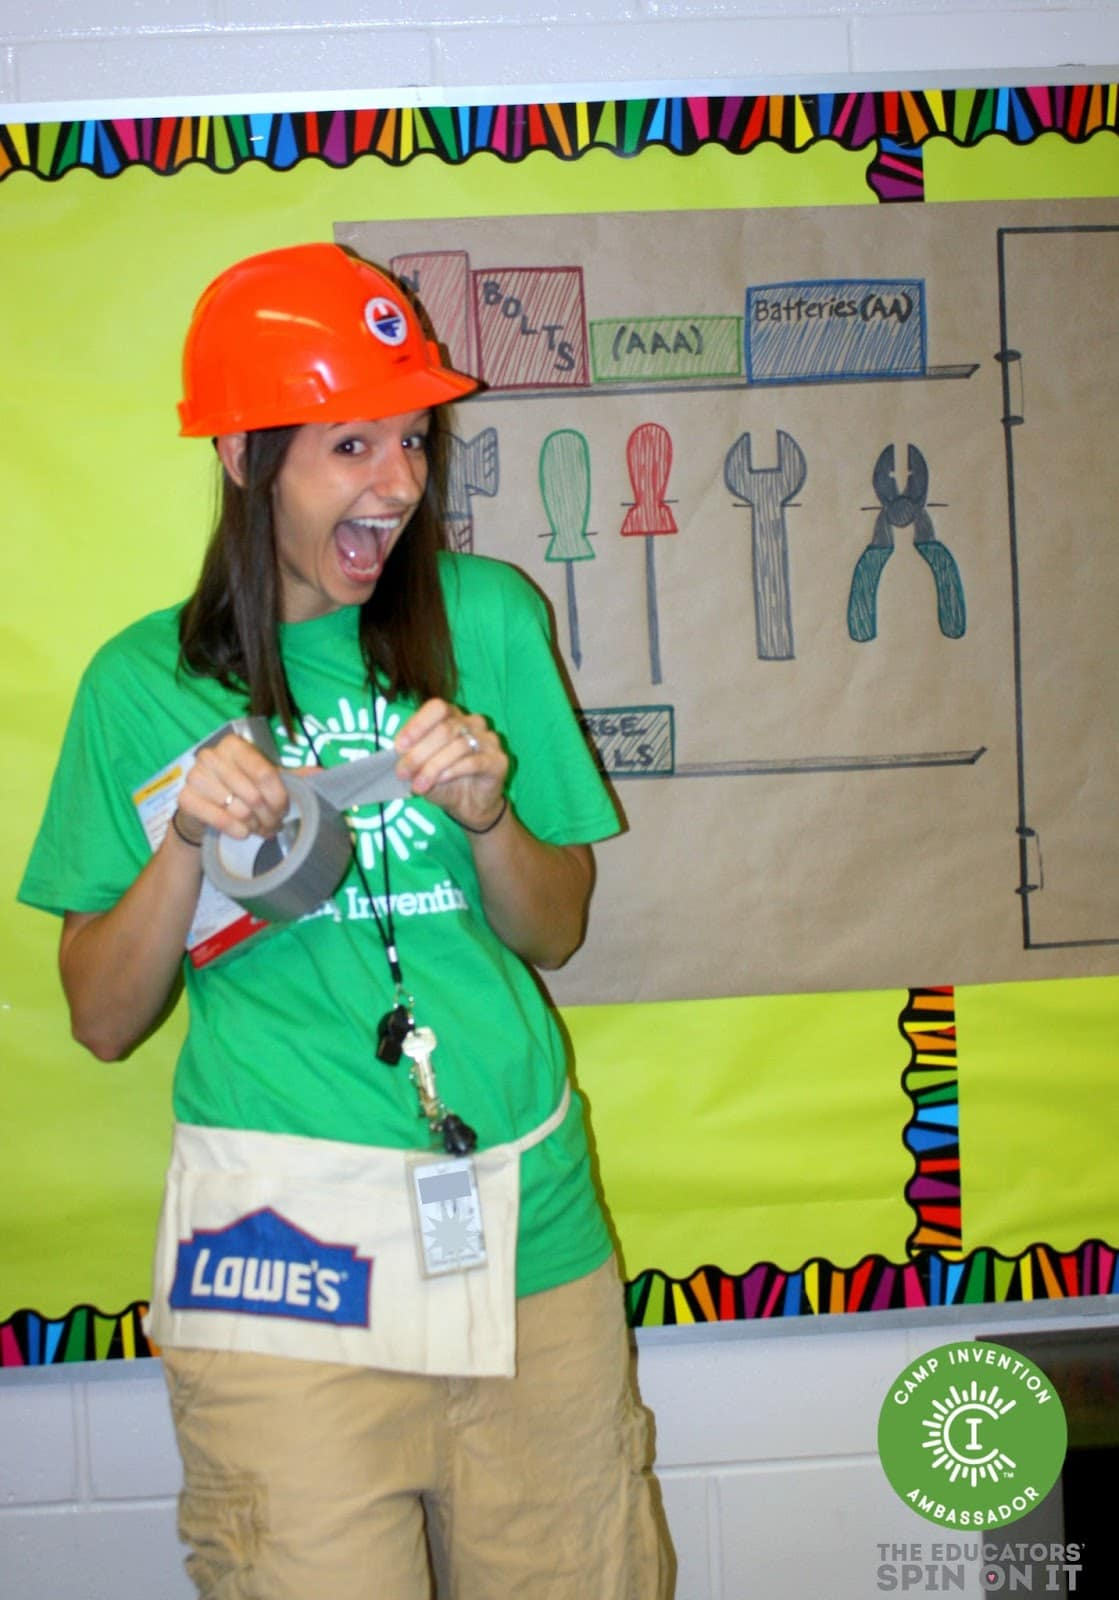 Camp Invention Educator ready to inspire a new generation of inventors